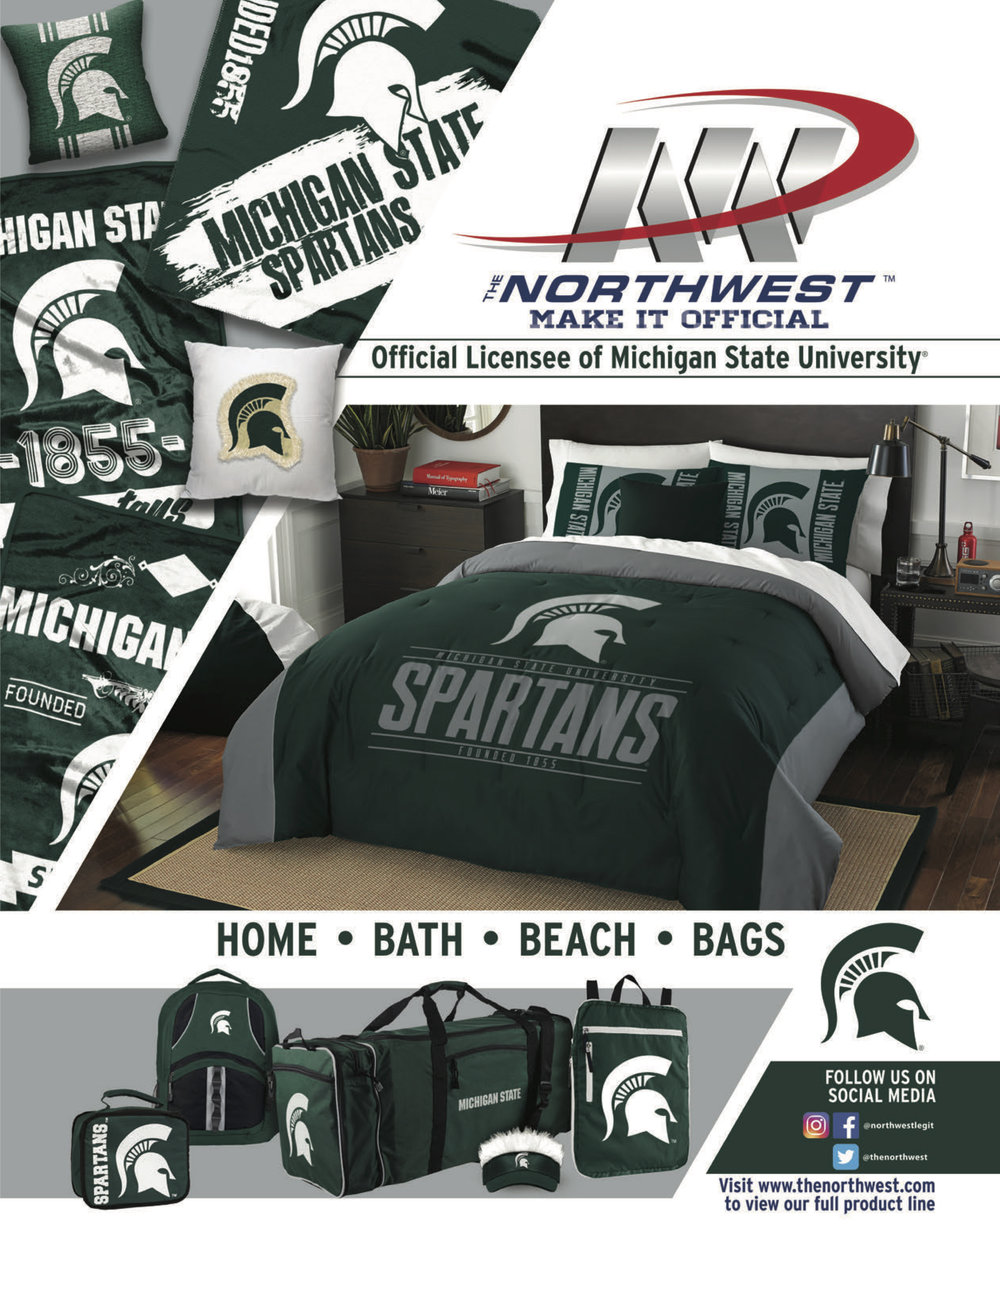 Retail Merchandiser MSU Feature page 2.jpg